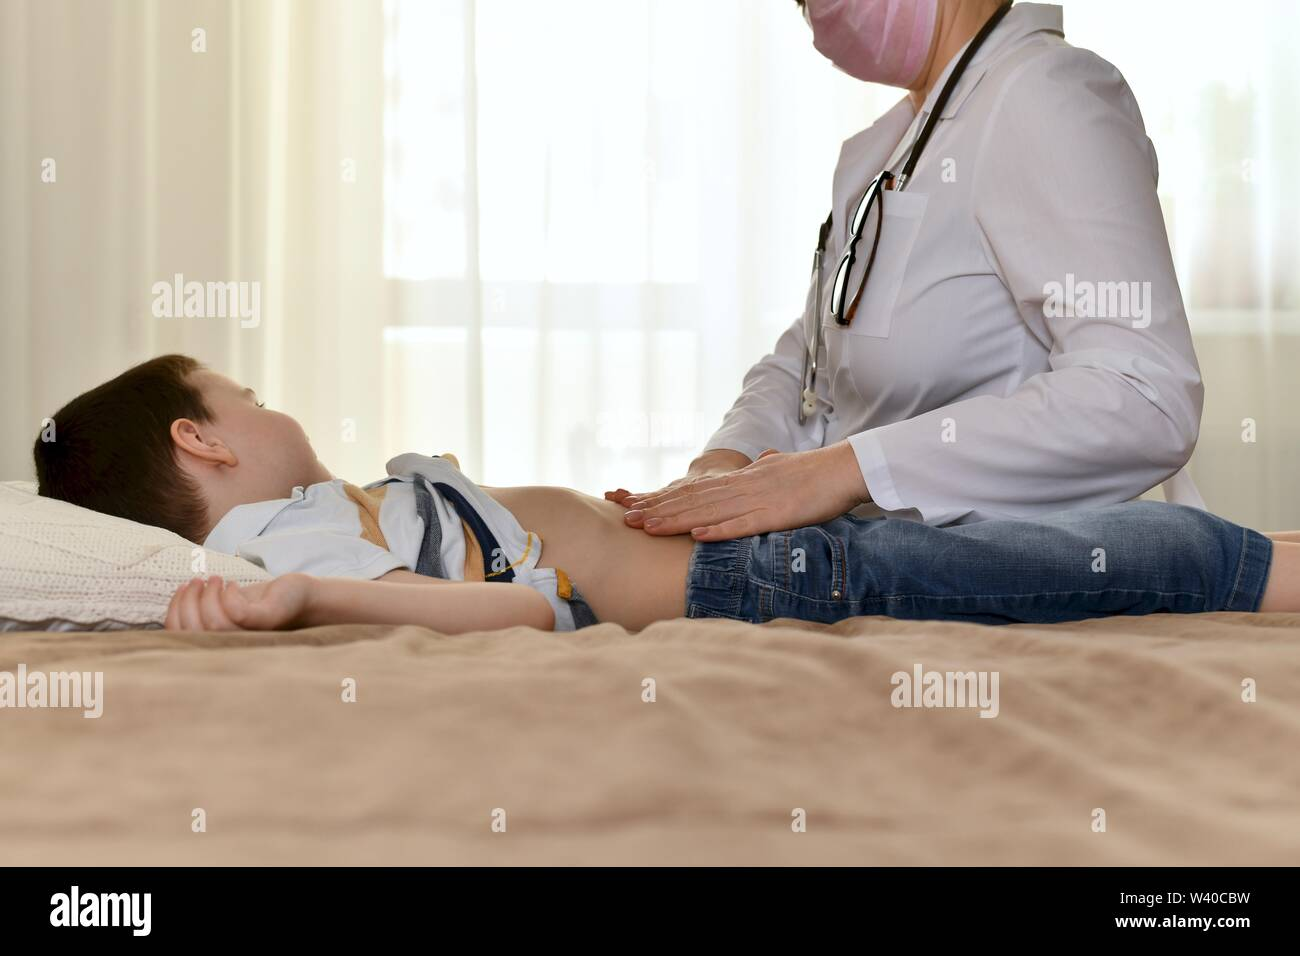 The doctor sits by the bed of the sick child and examines the abdomen. The boy turned his head to the side and calmly watched her actions. Stock Photo